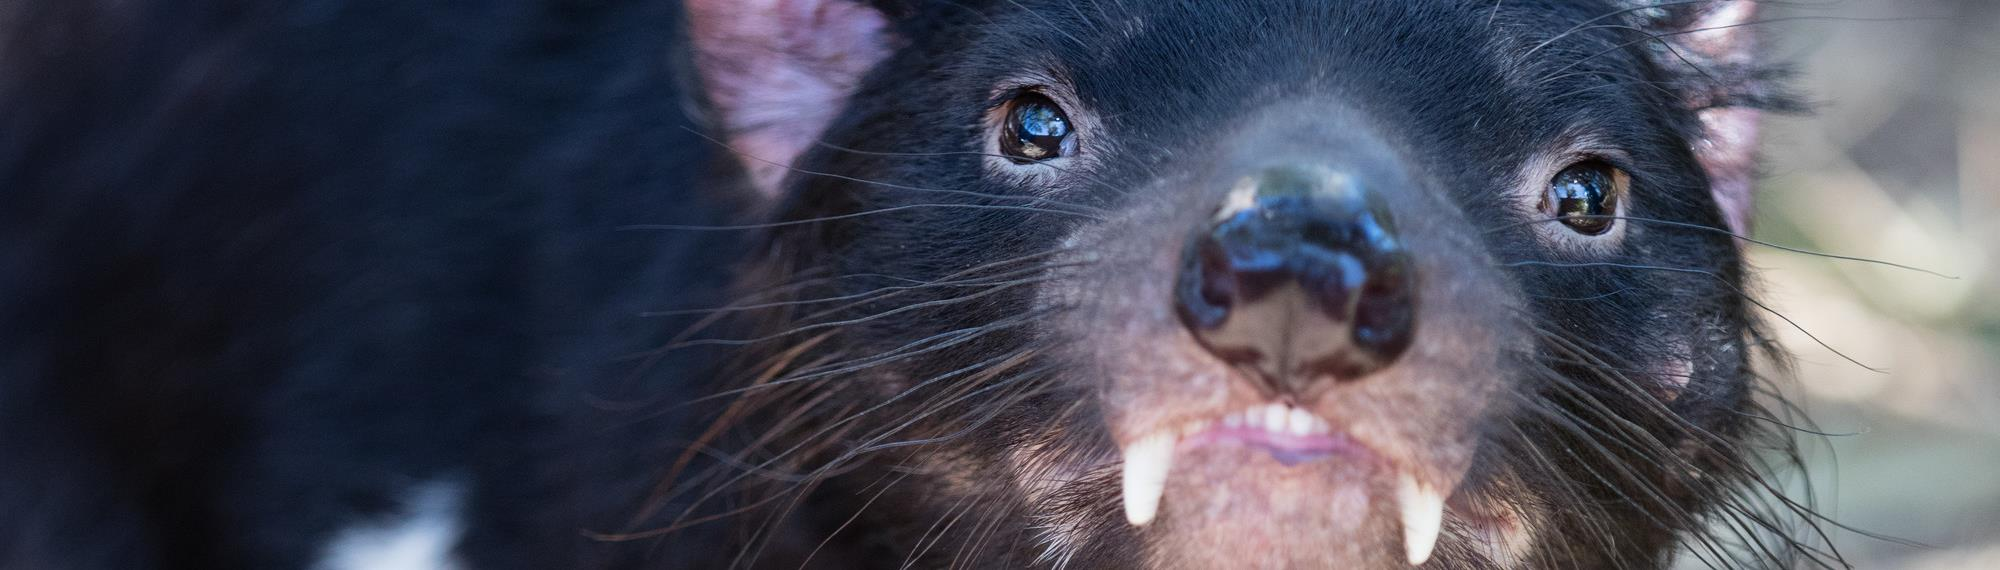 Tasmanian Devil close up profile picture. Excellent detail showing bright eyes and its teeth and two sharp fangs surrounded by long black whiskers.